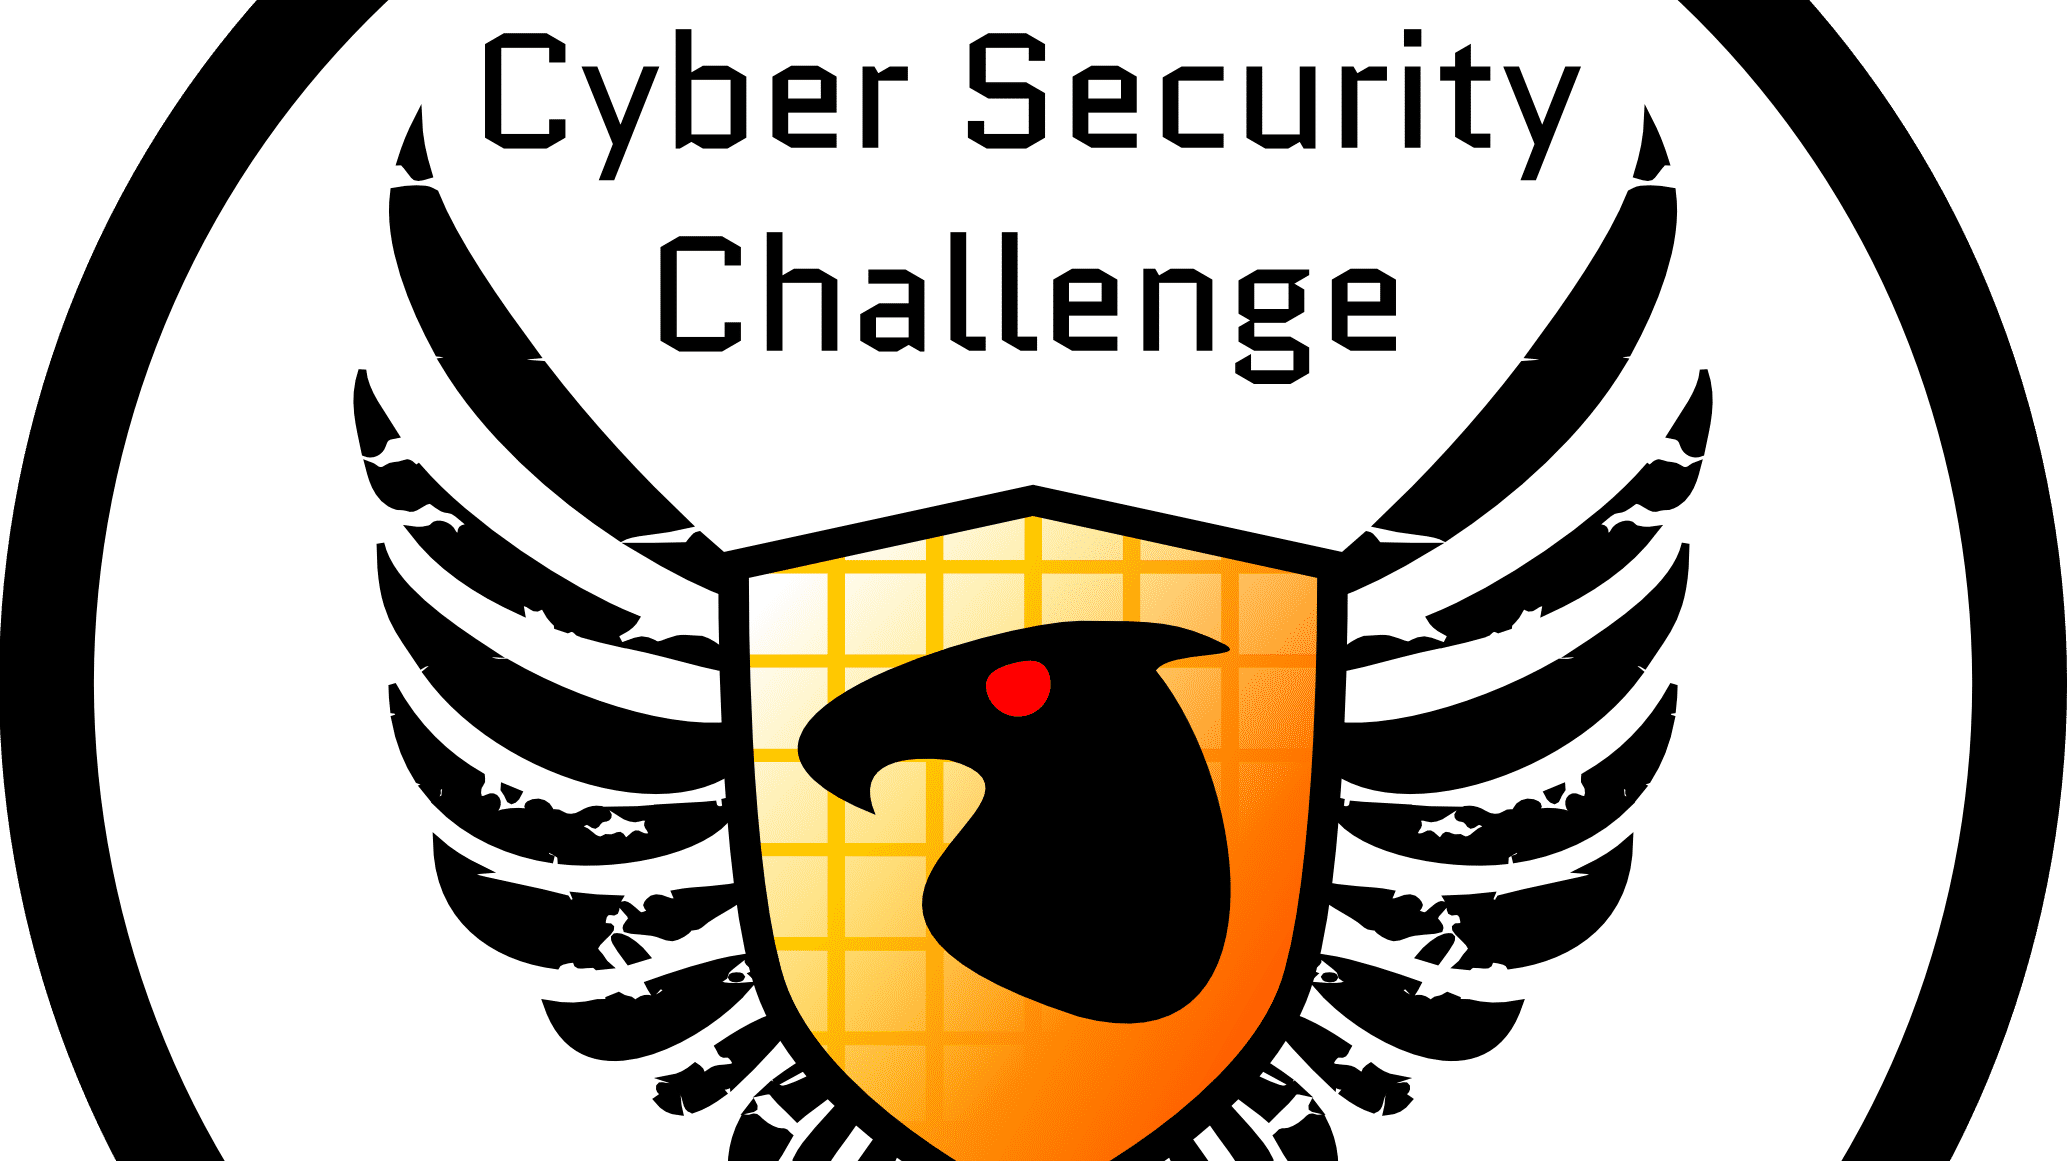 Karriere machen in der IT-Branche: Jobmesse zur Cyber Security Challenge Germany